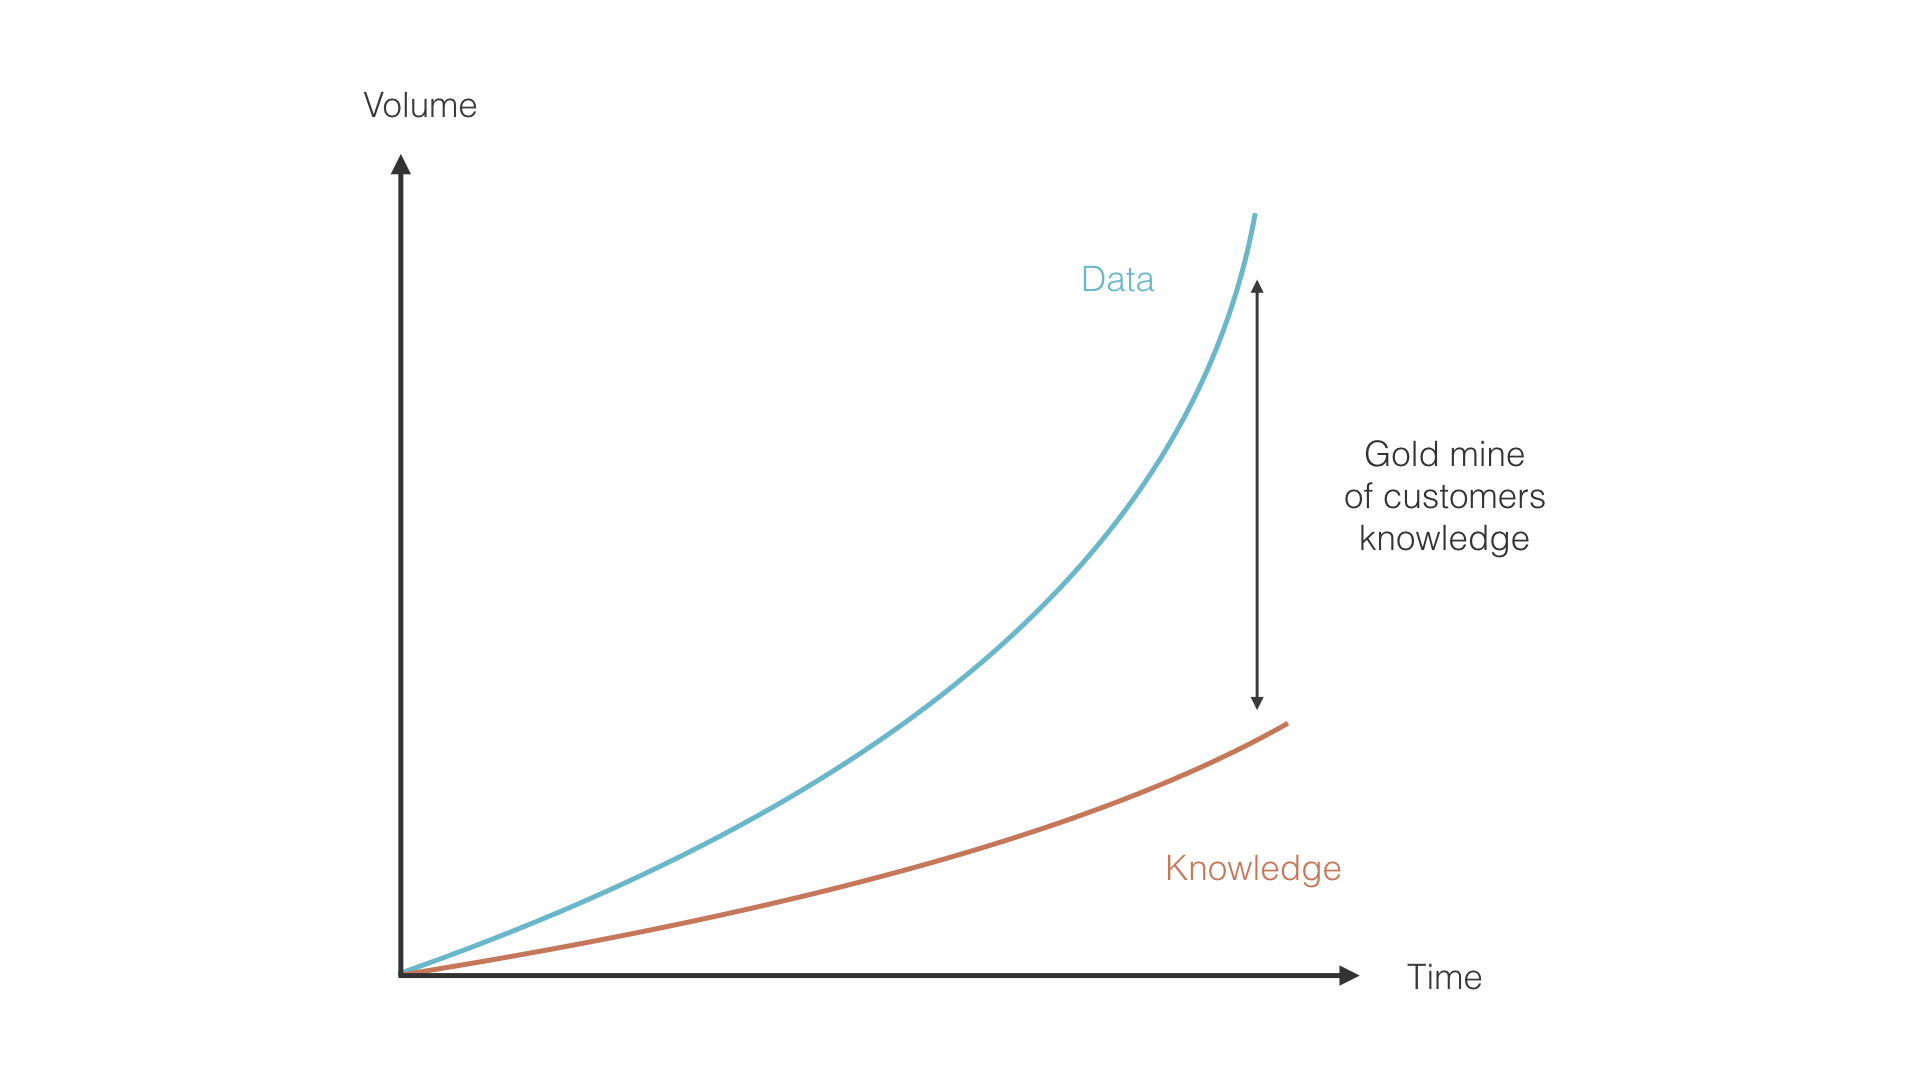 Gap between customer knowledge with and without verbatims